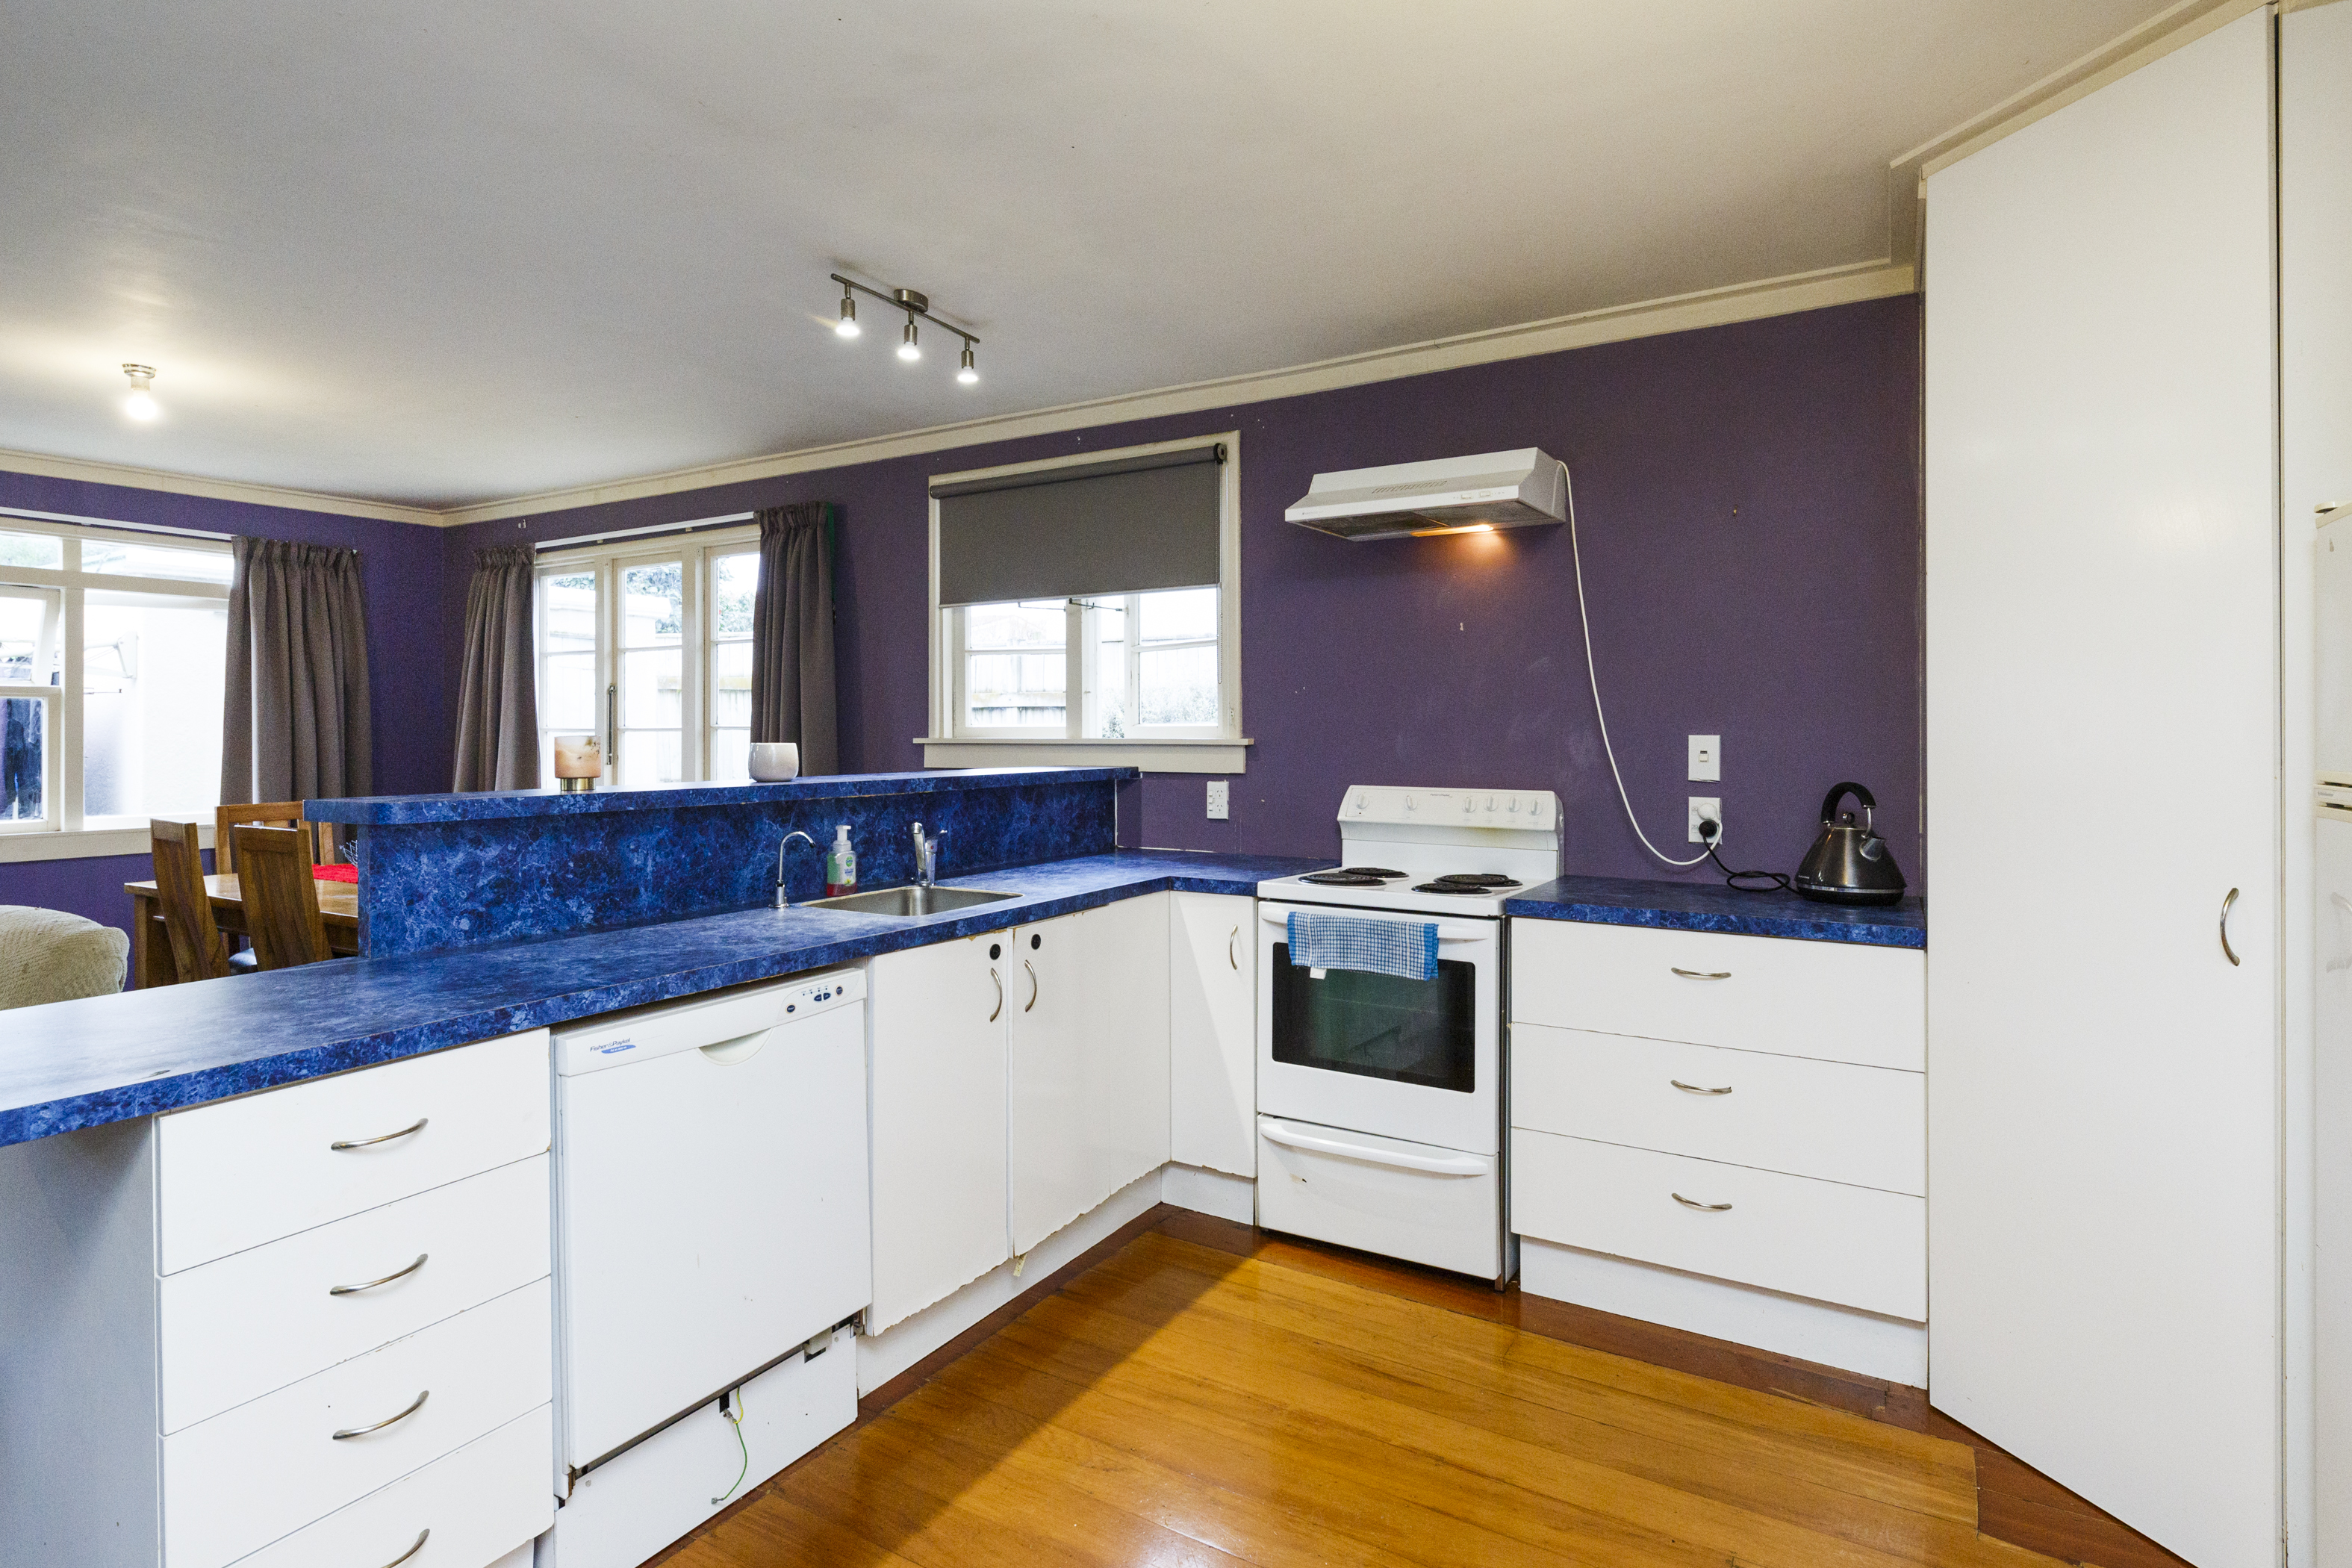 Property Picture: Offers Over: $490,000